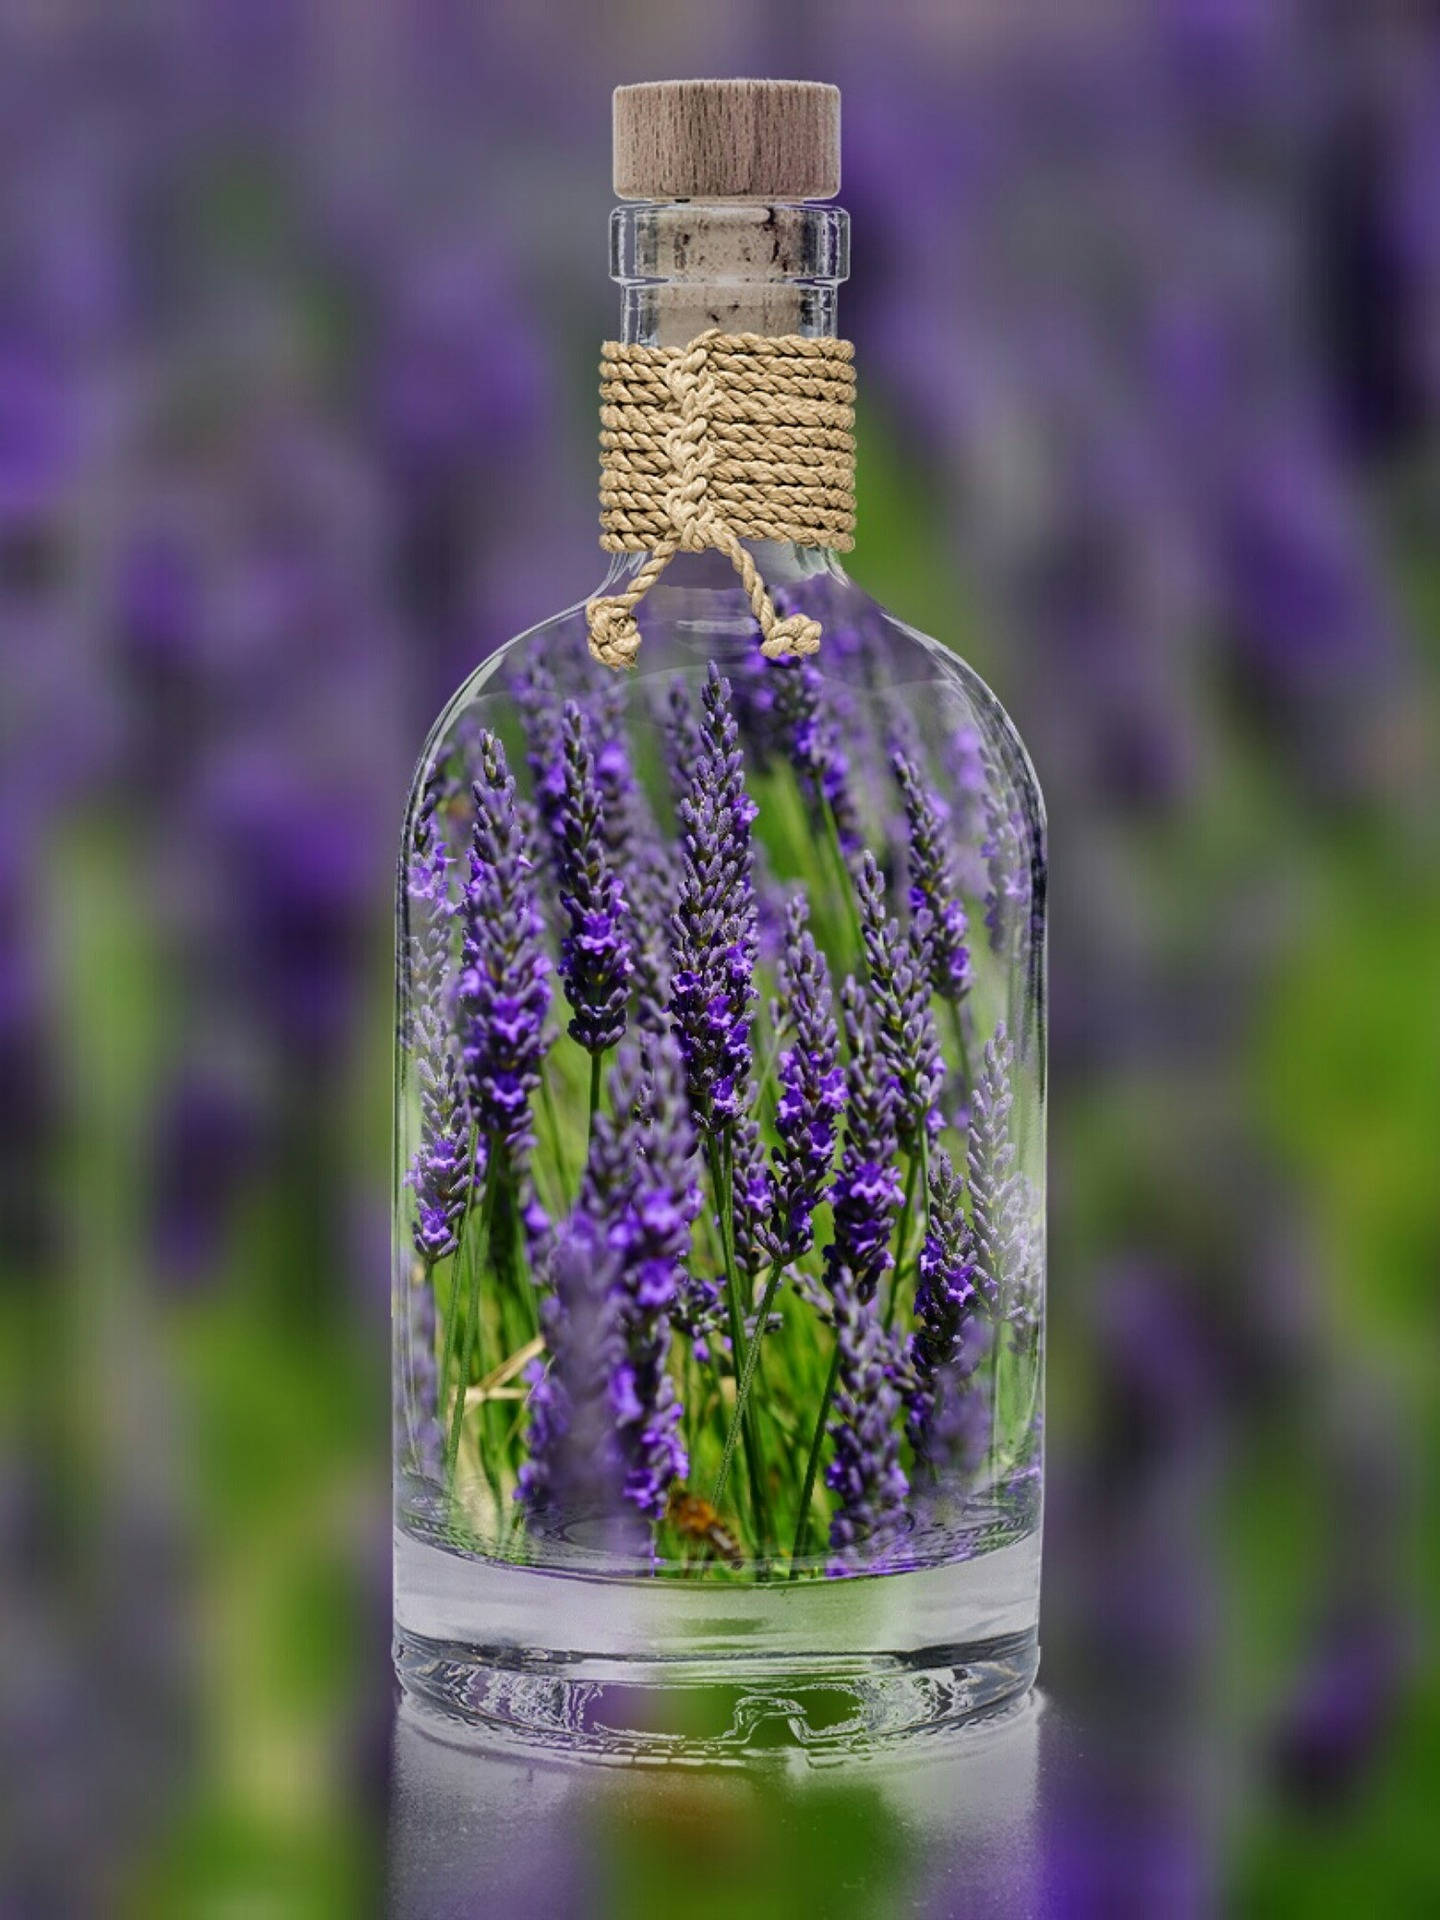 Lavender essential oil  Lavandula Angustifolia Flower oil  Aromatherapy  raw materials.jpg